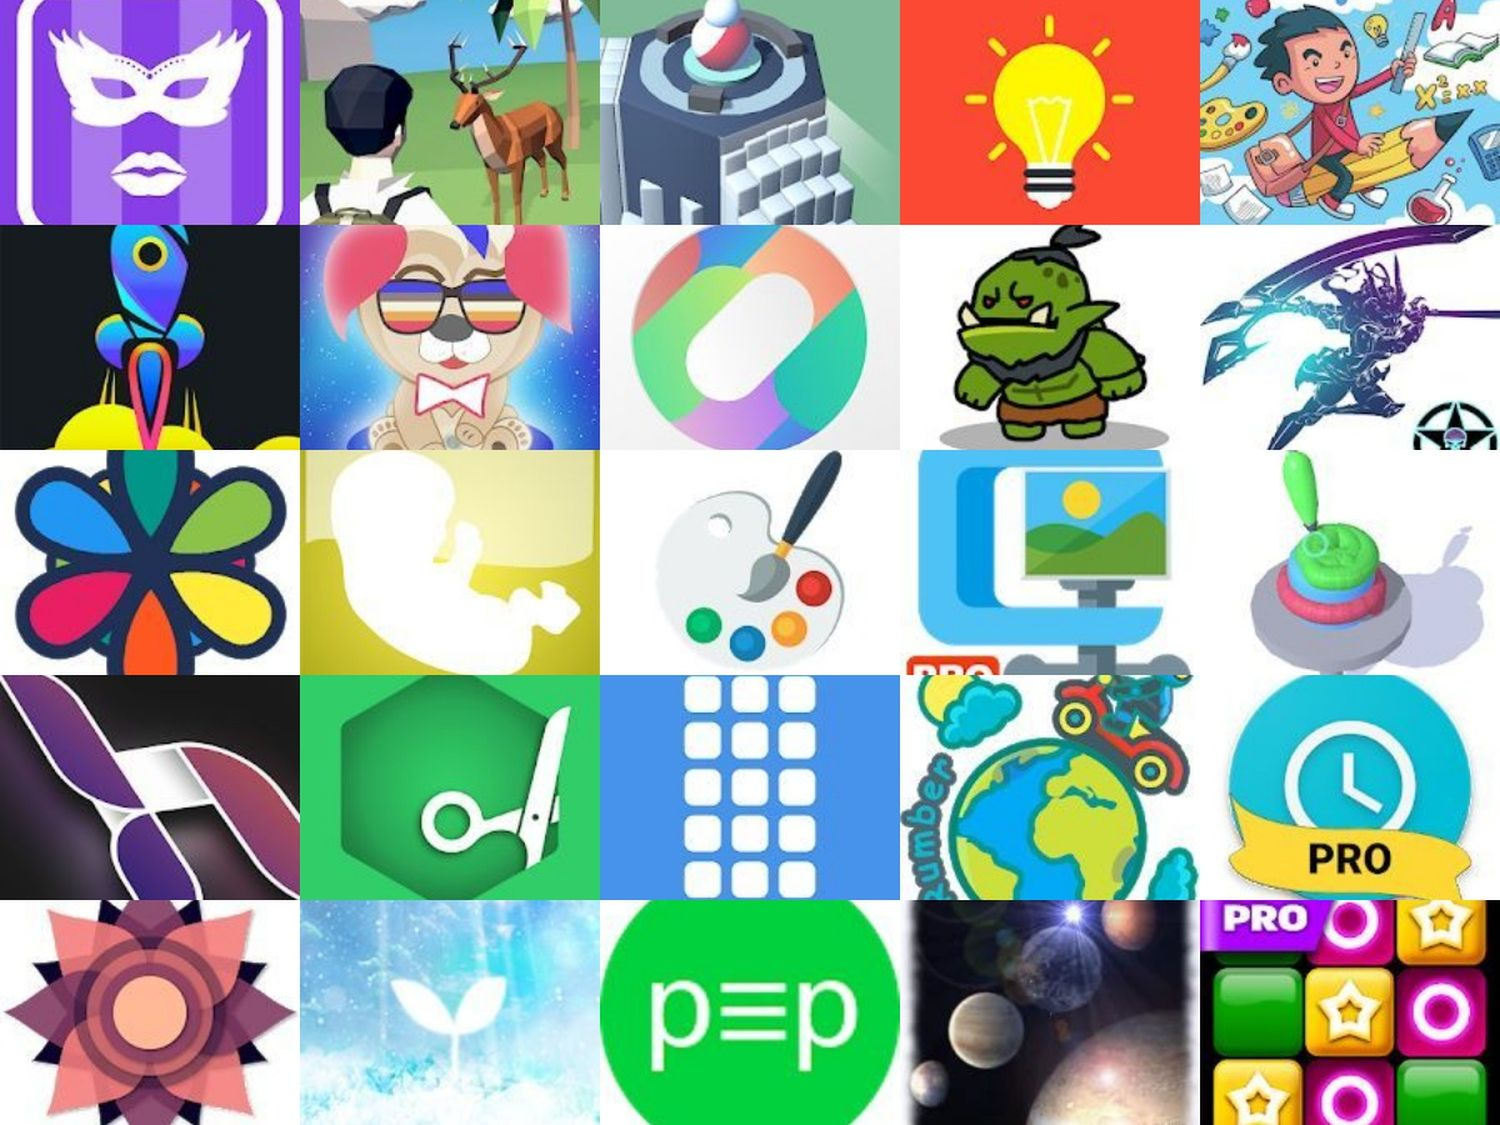 apps 27.06.2020